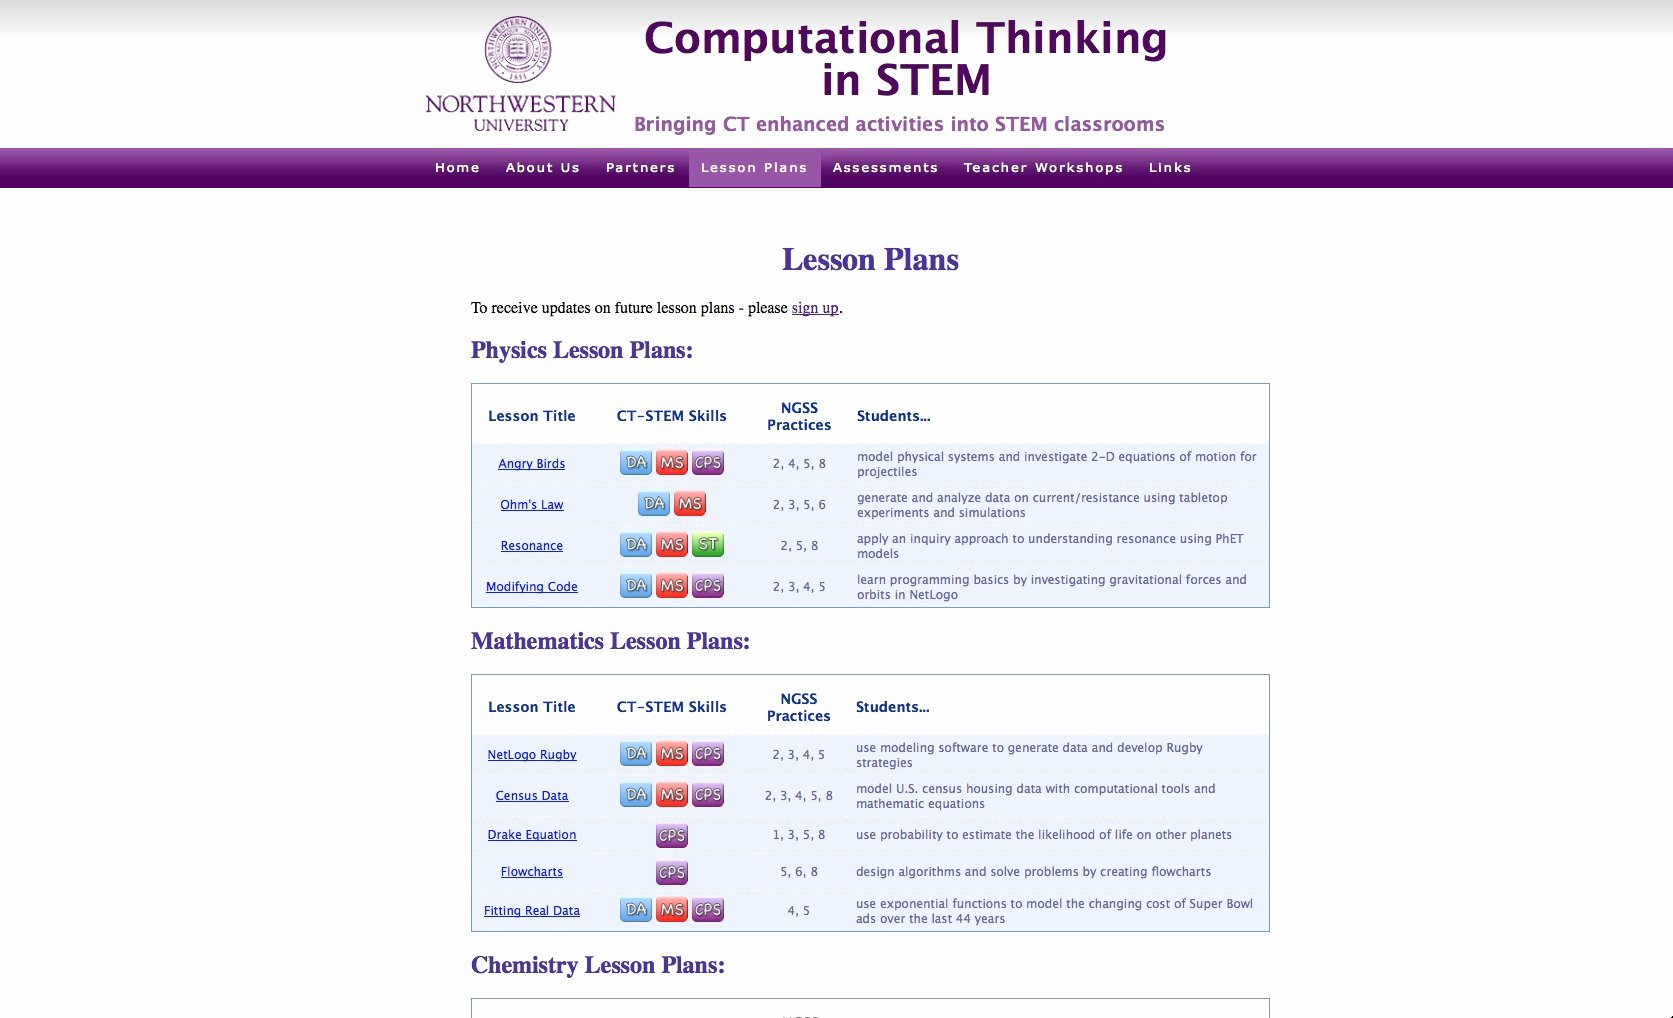 Ngss Lesson Plan Template Unique Putational Thinking In Stem northwestern University